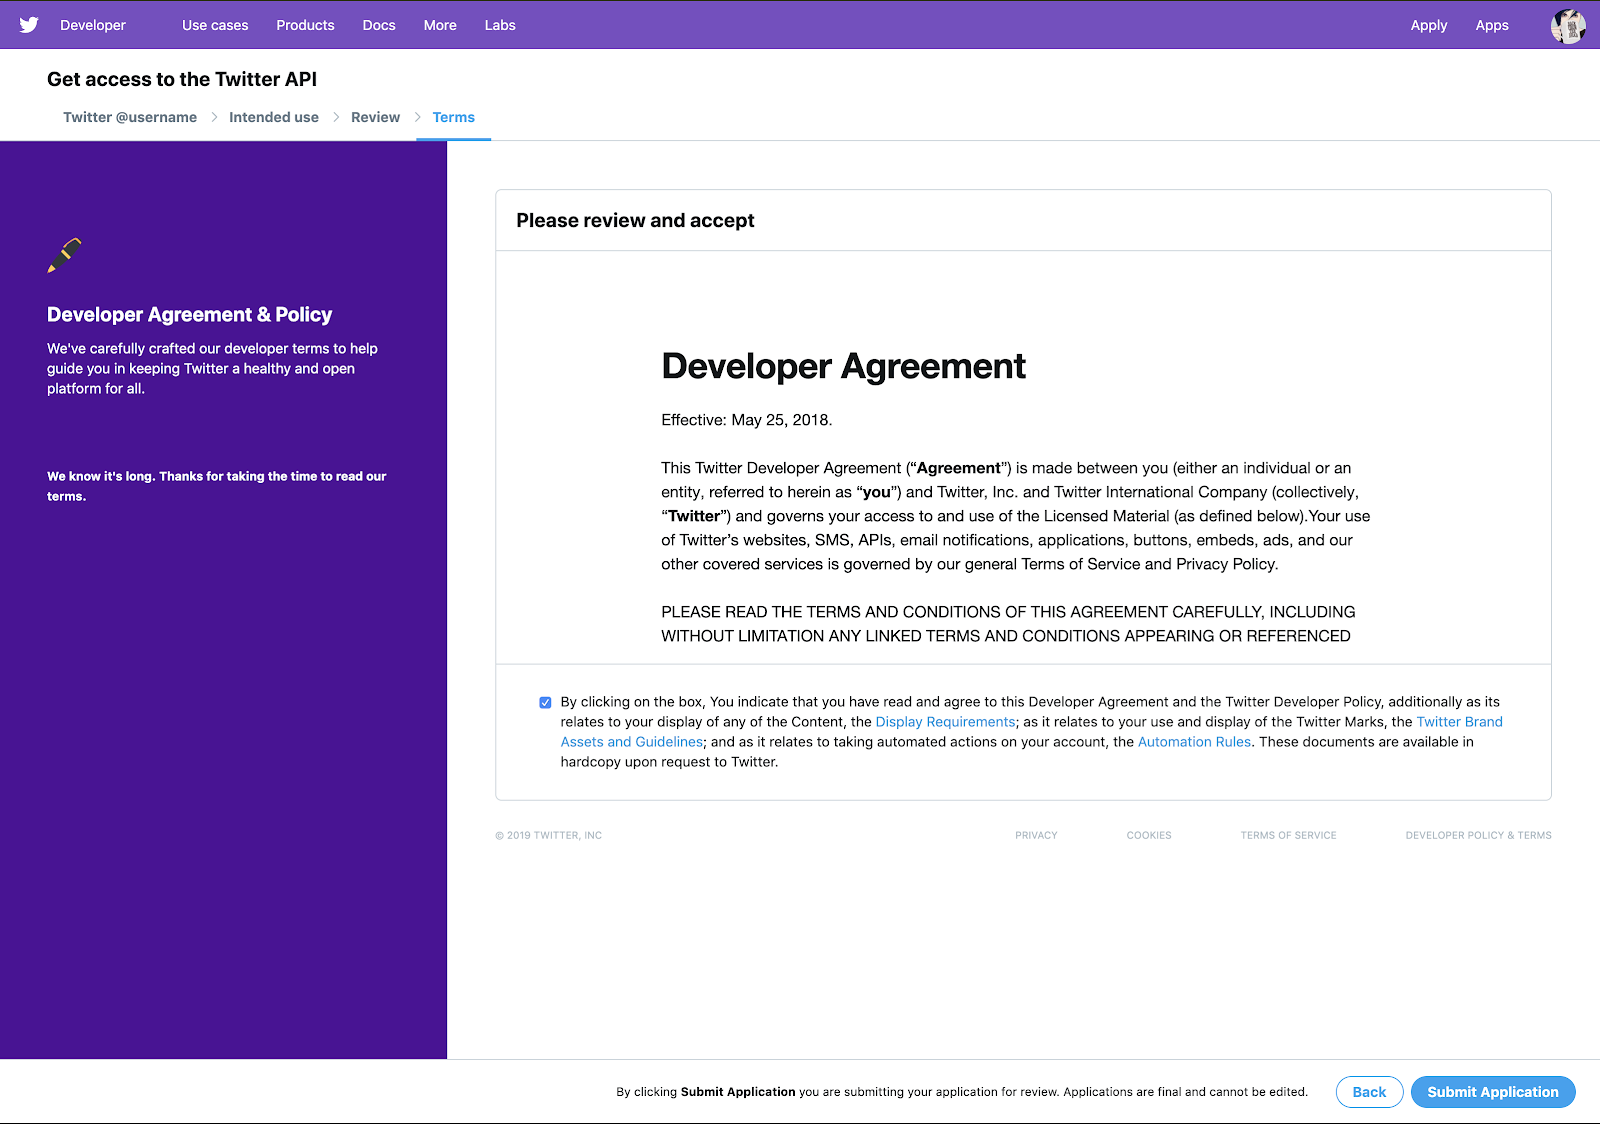 Review and accept developer agreement